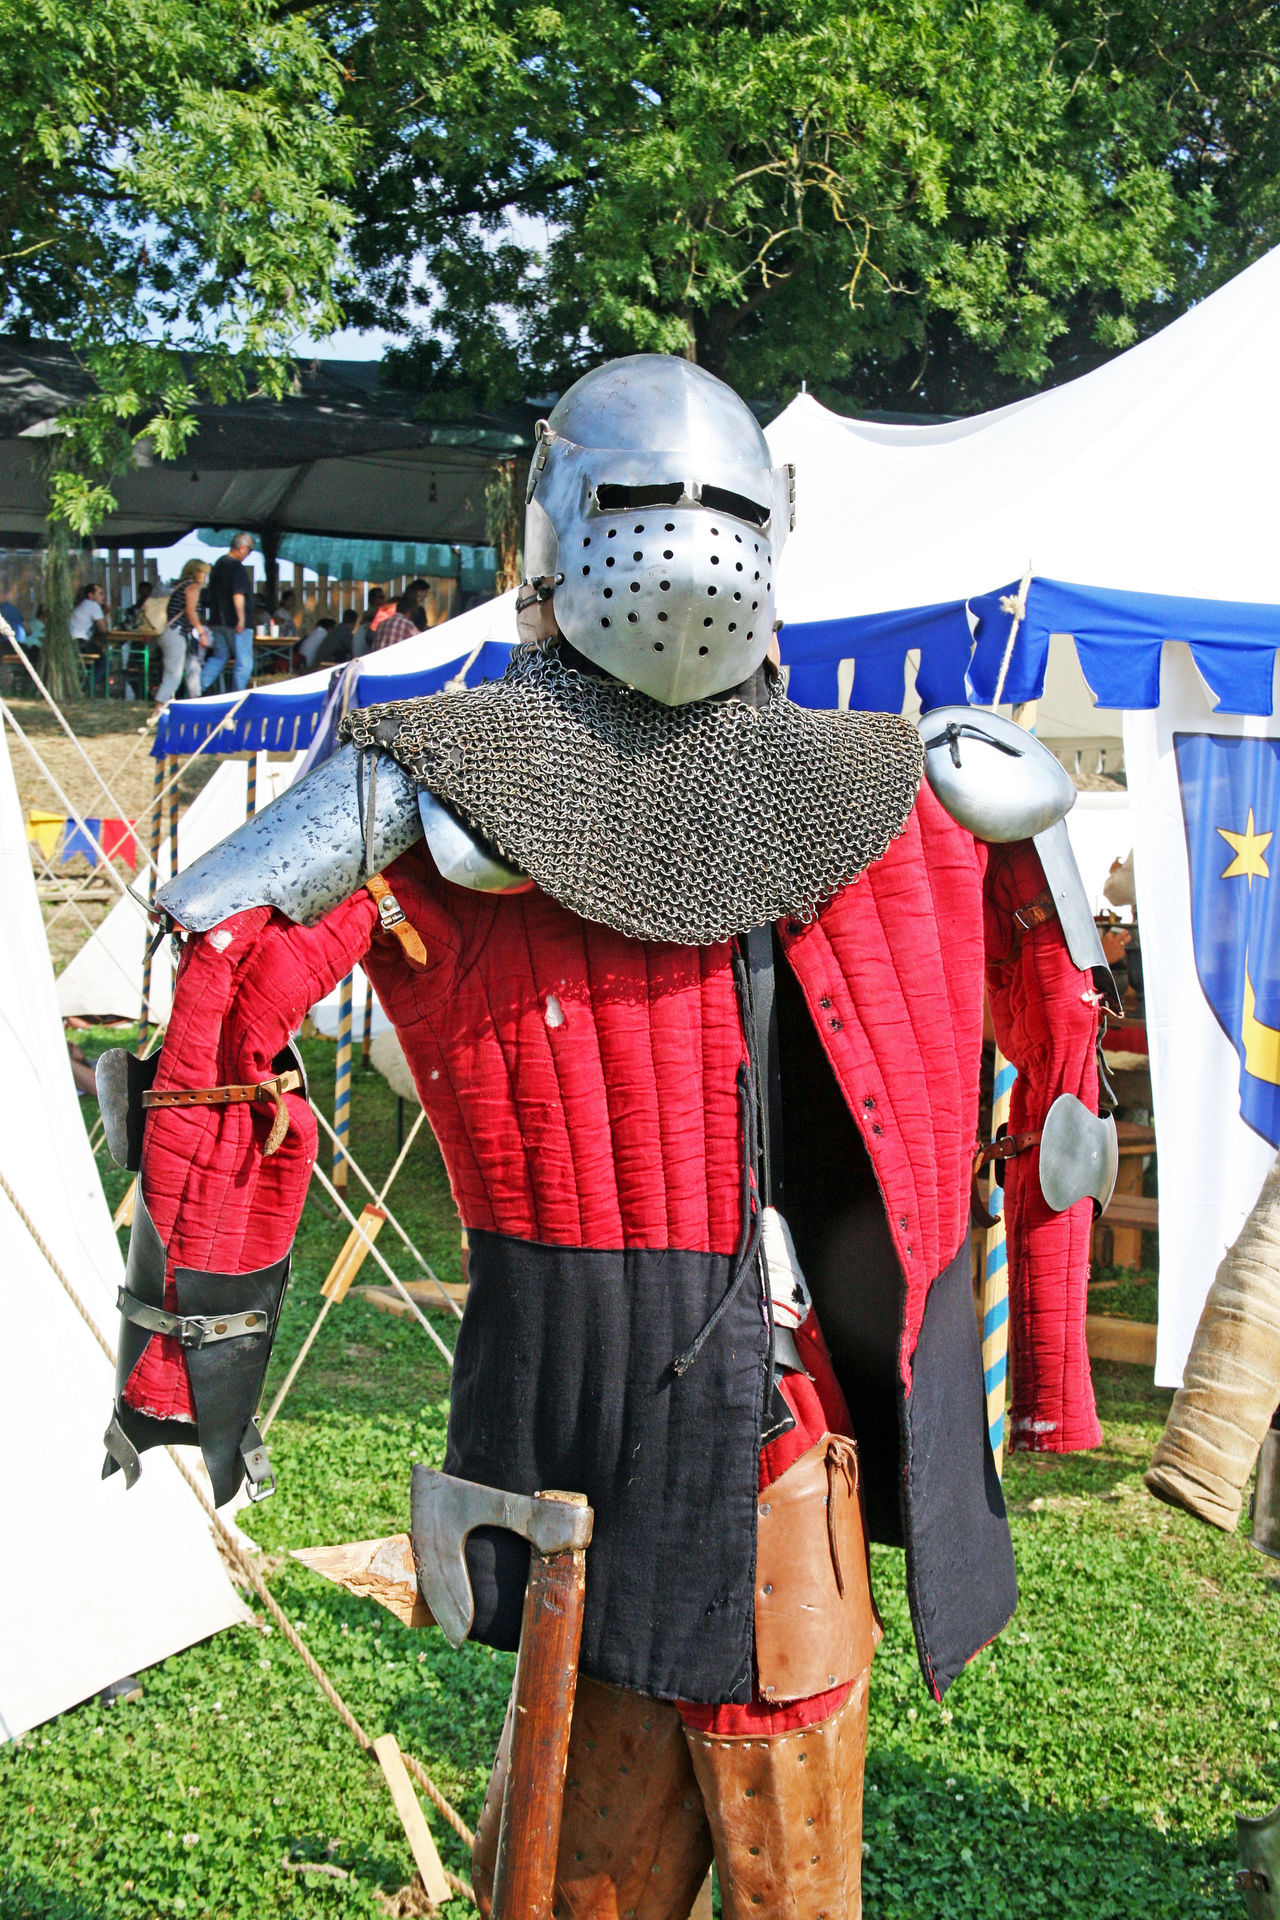 Renaissance Festival,Koprivnica,Croatia,Europe,colourful armours,1 Armours Battlefield Colourful Croatia Day Eu Europe History Knights Koprivnica Medieval Metal Metallic Outdoors Picturesque Renaissance Festival